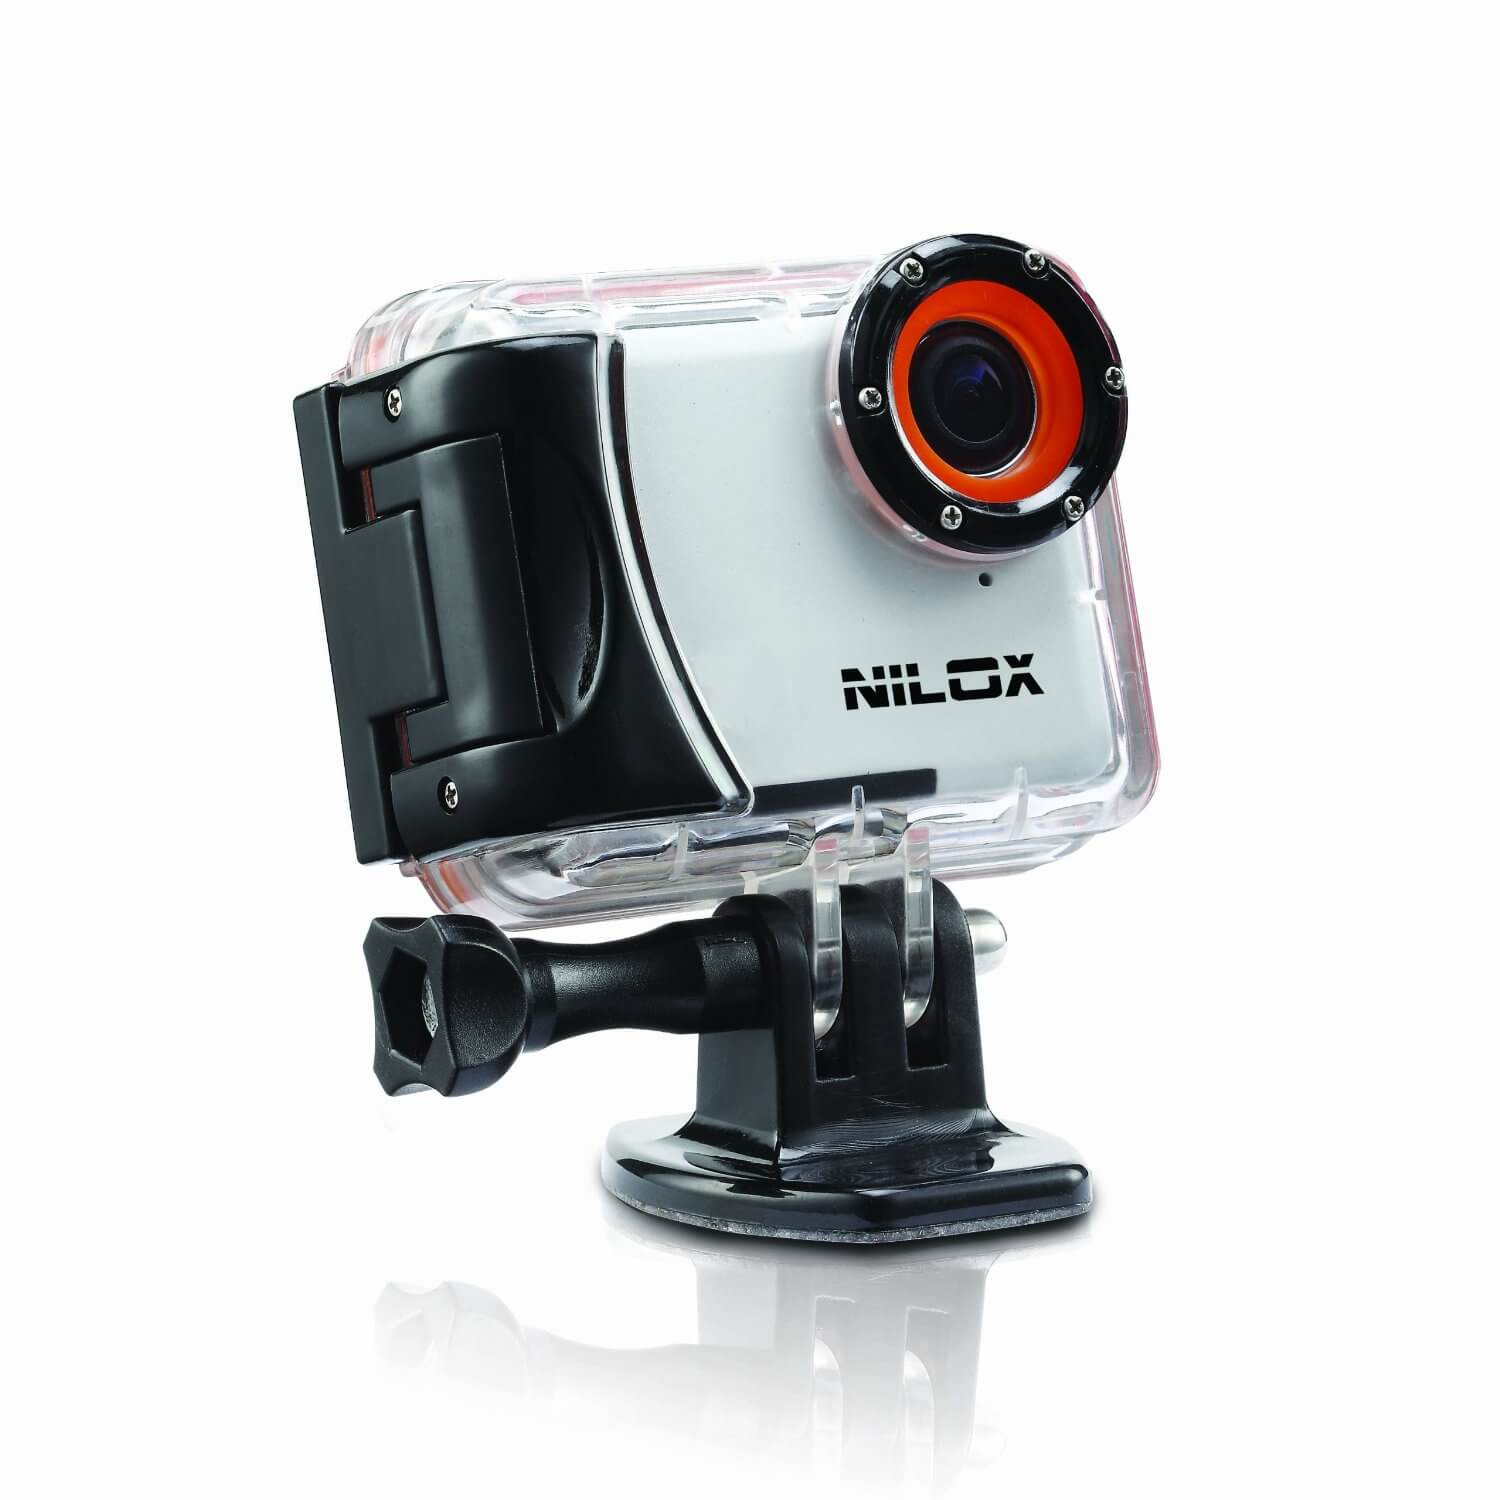 Nilox F-60 Reloaded Action Camera NXF60RL B&H Photo Video